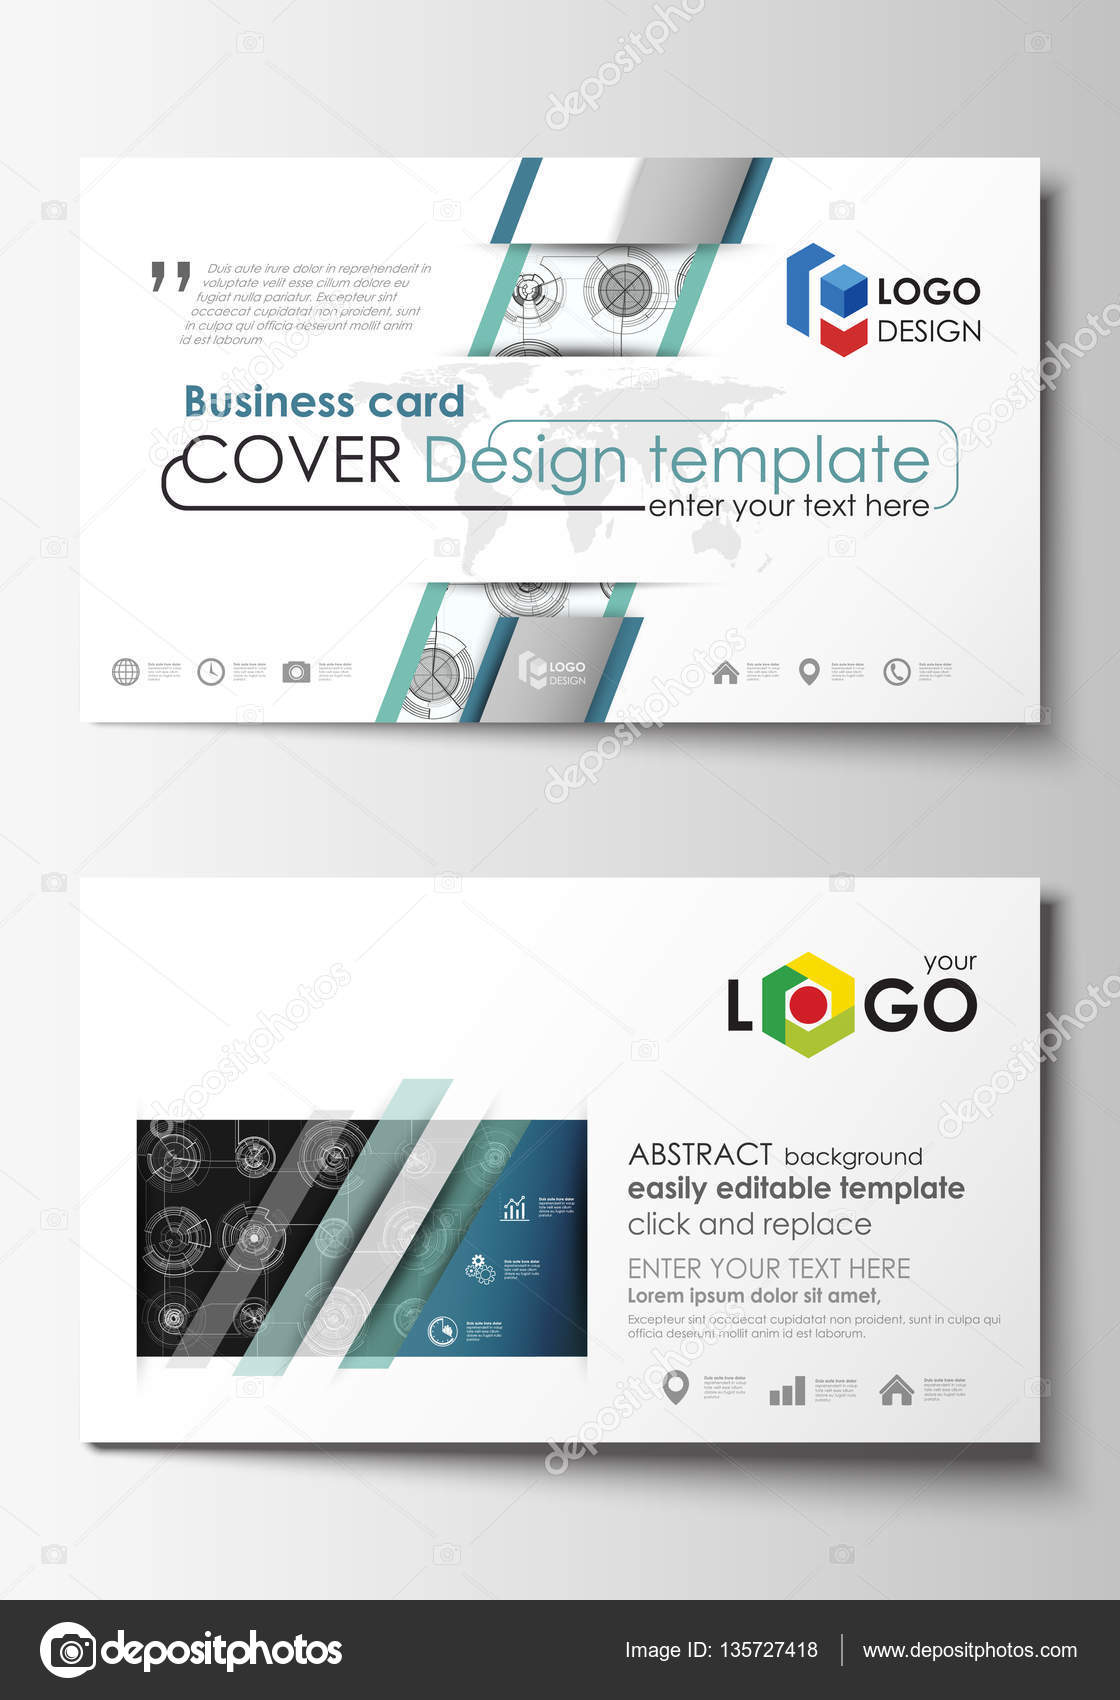 Business card templates easy editable layouts flat style template business card templates easy editable layouts flat style template vector illustration high tech design connecting system wajeb Gallery